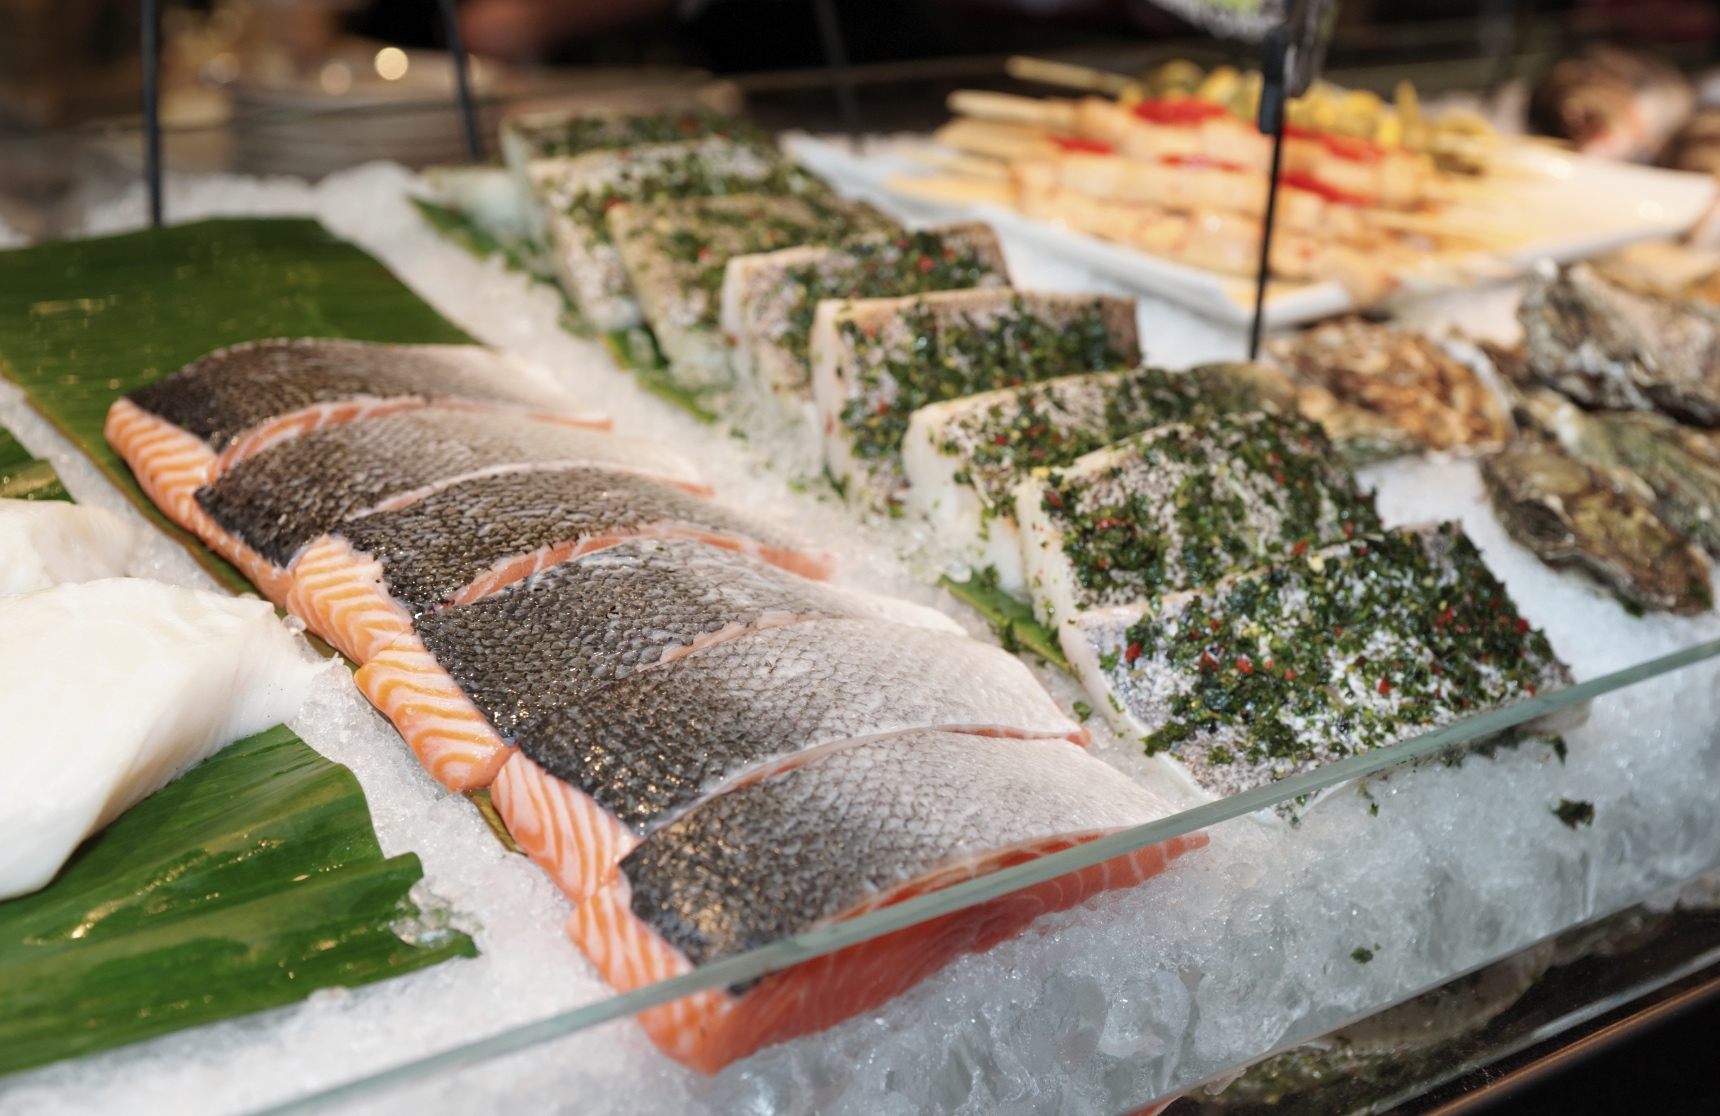 Fish steaks at the market. image: kondor83